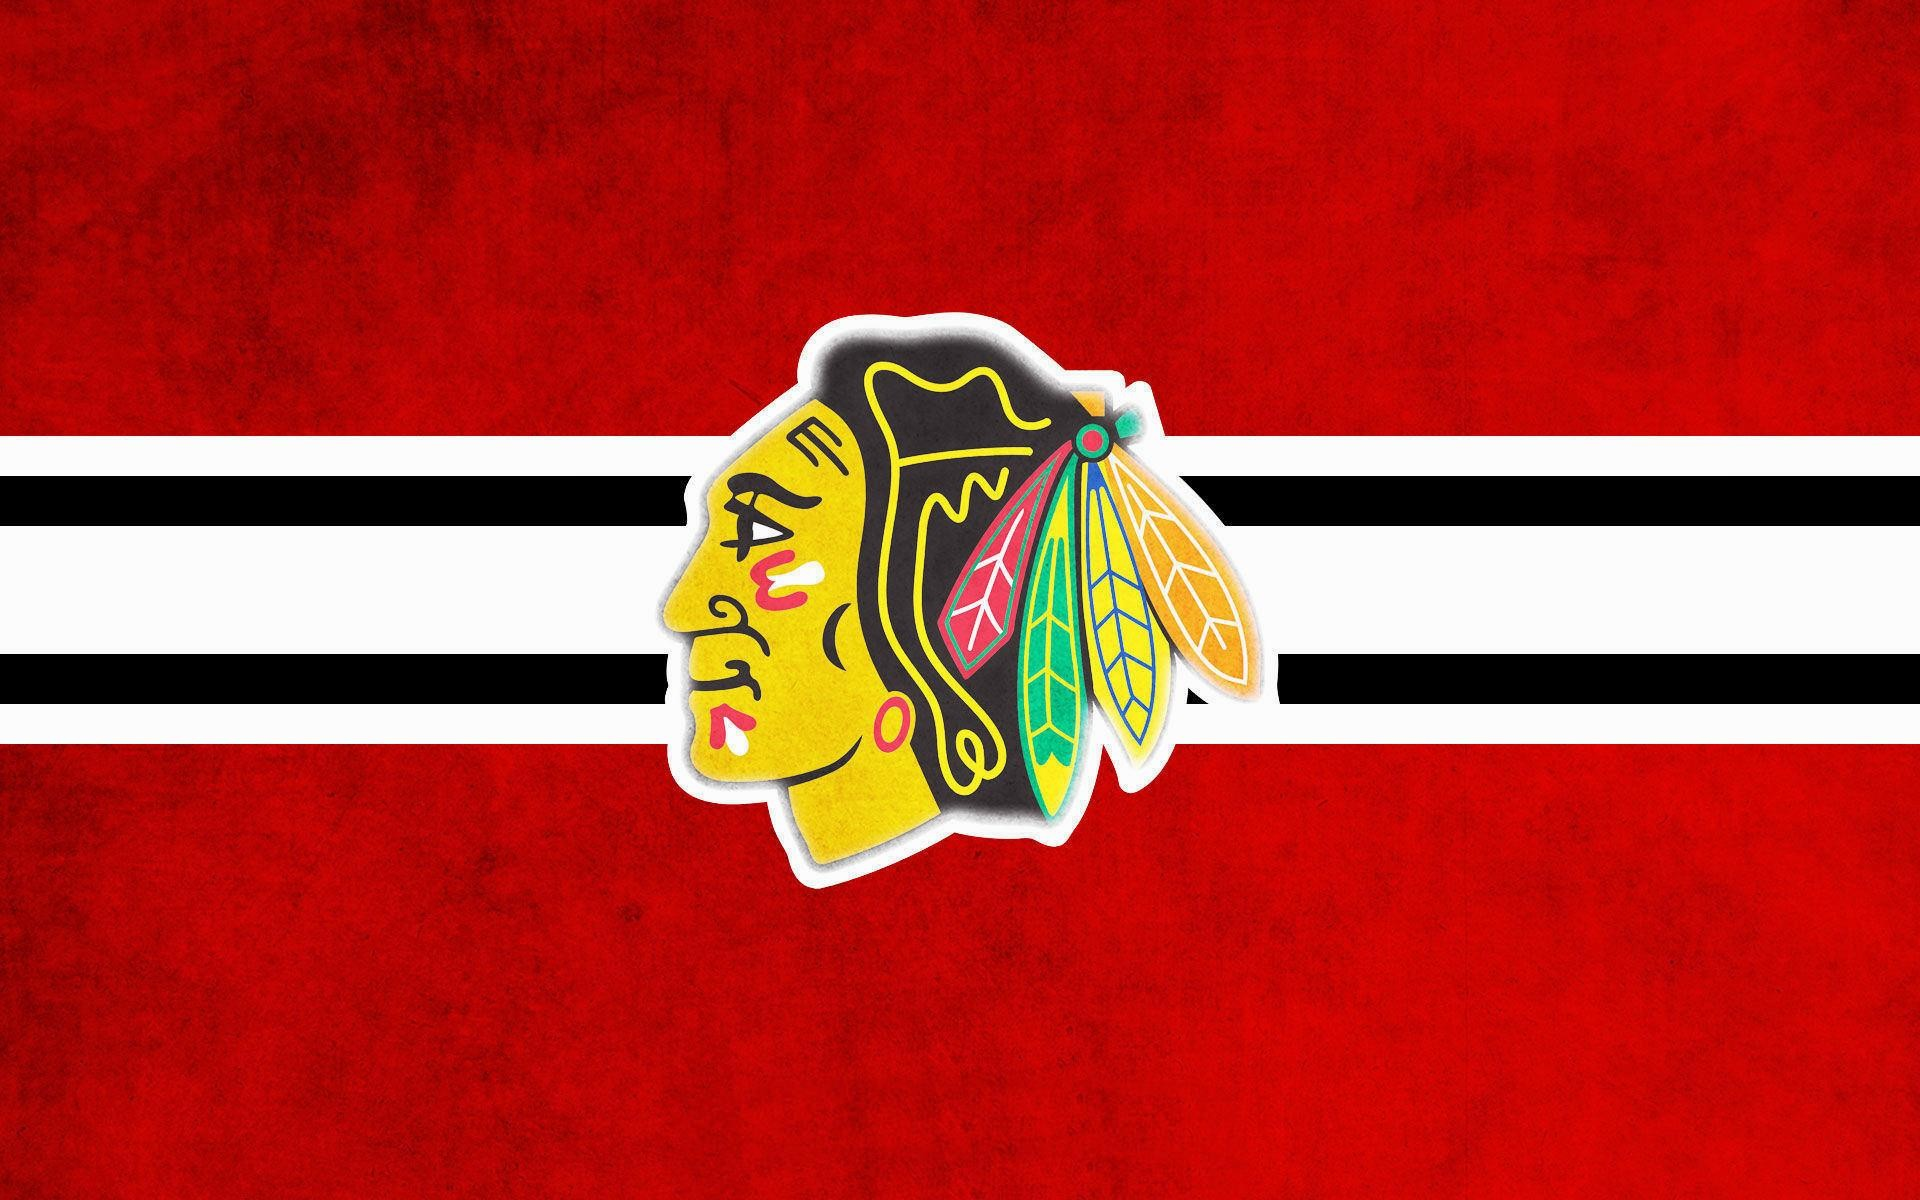 Blackhawks wallpaper ·① Download free cool full HD ...